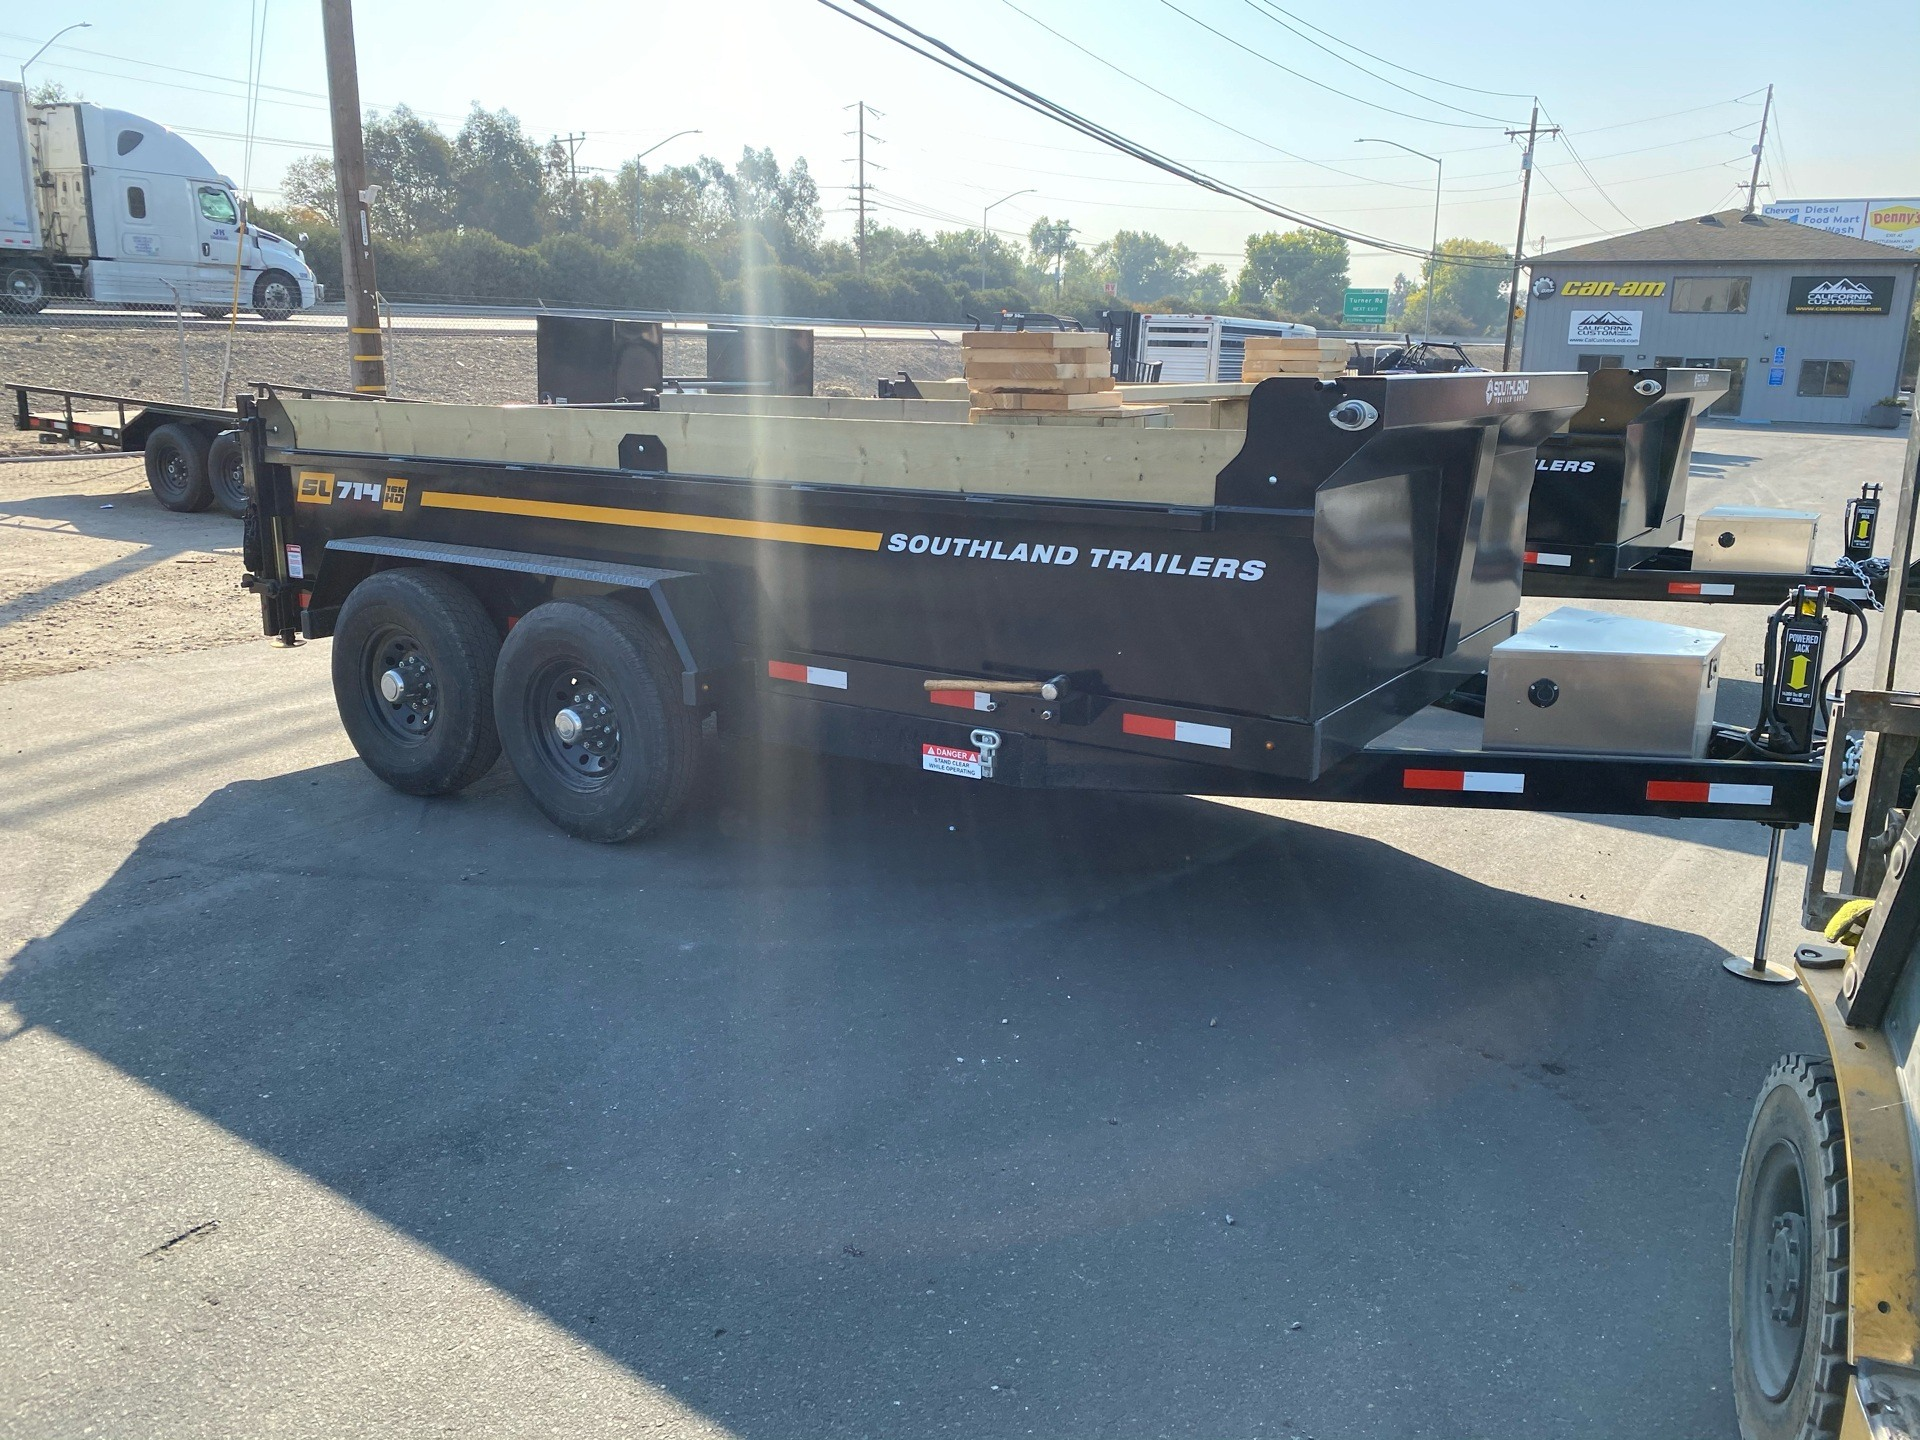 2021 SOUTHLAND TRAILER CORP SL714 16K DUMP TRAILER in Acampo, California - Photo 4